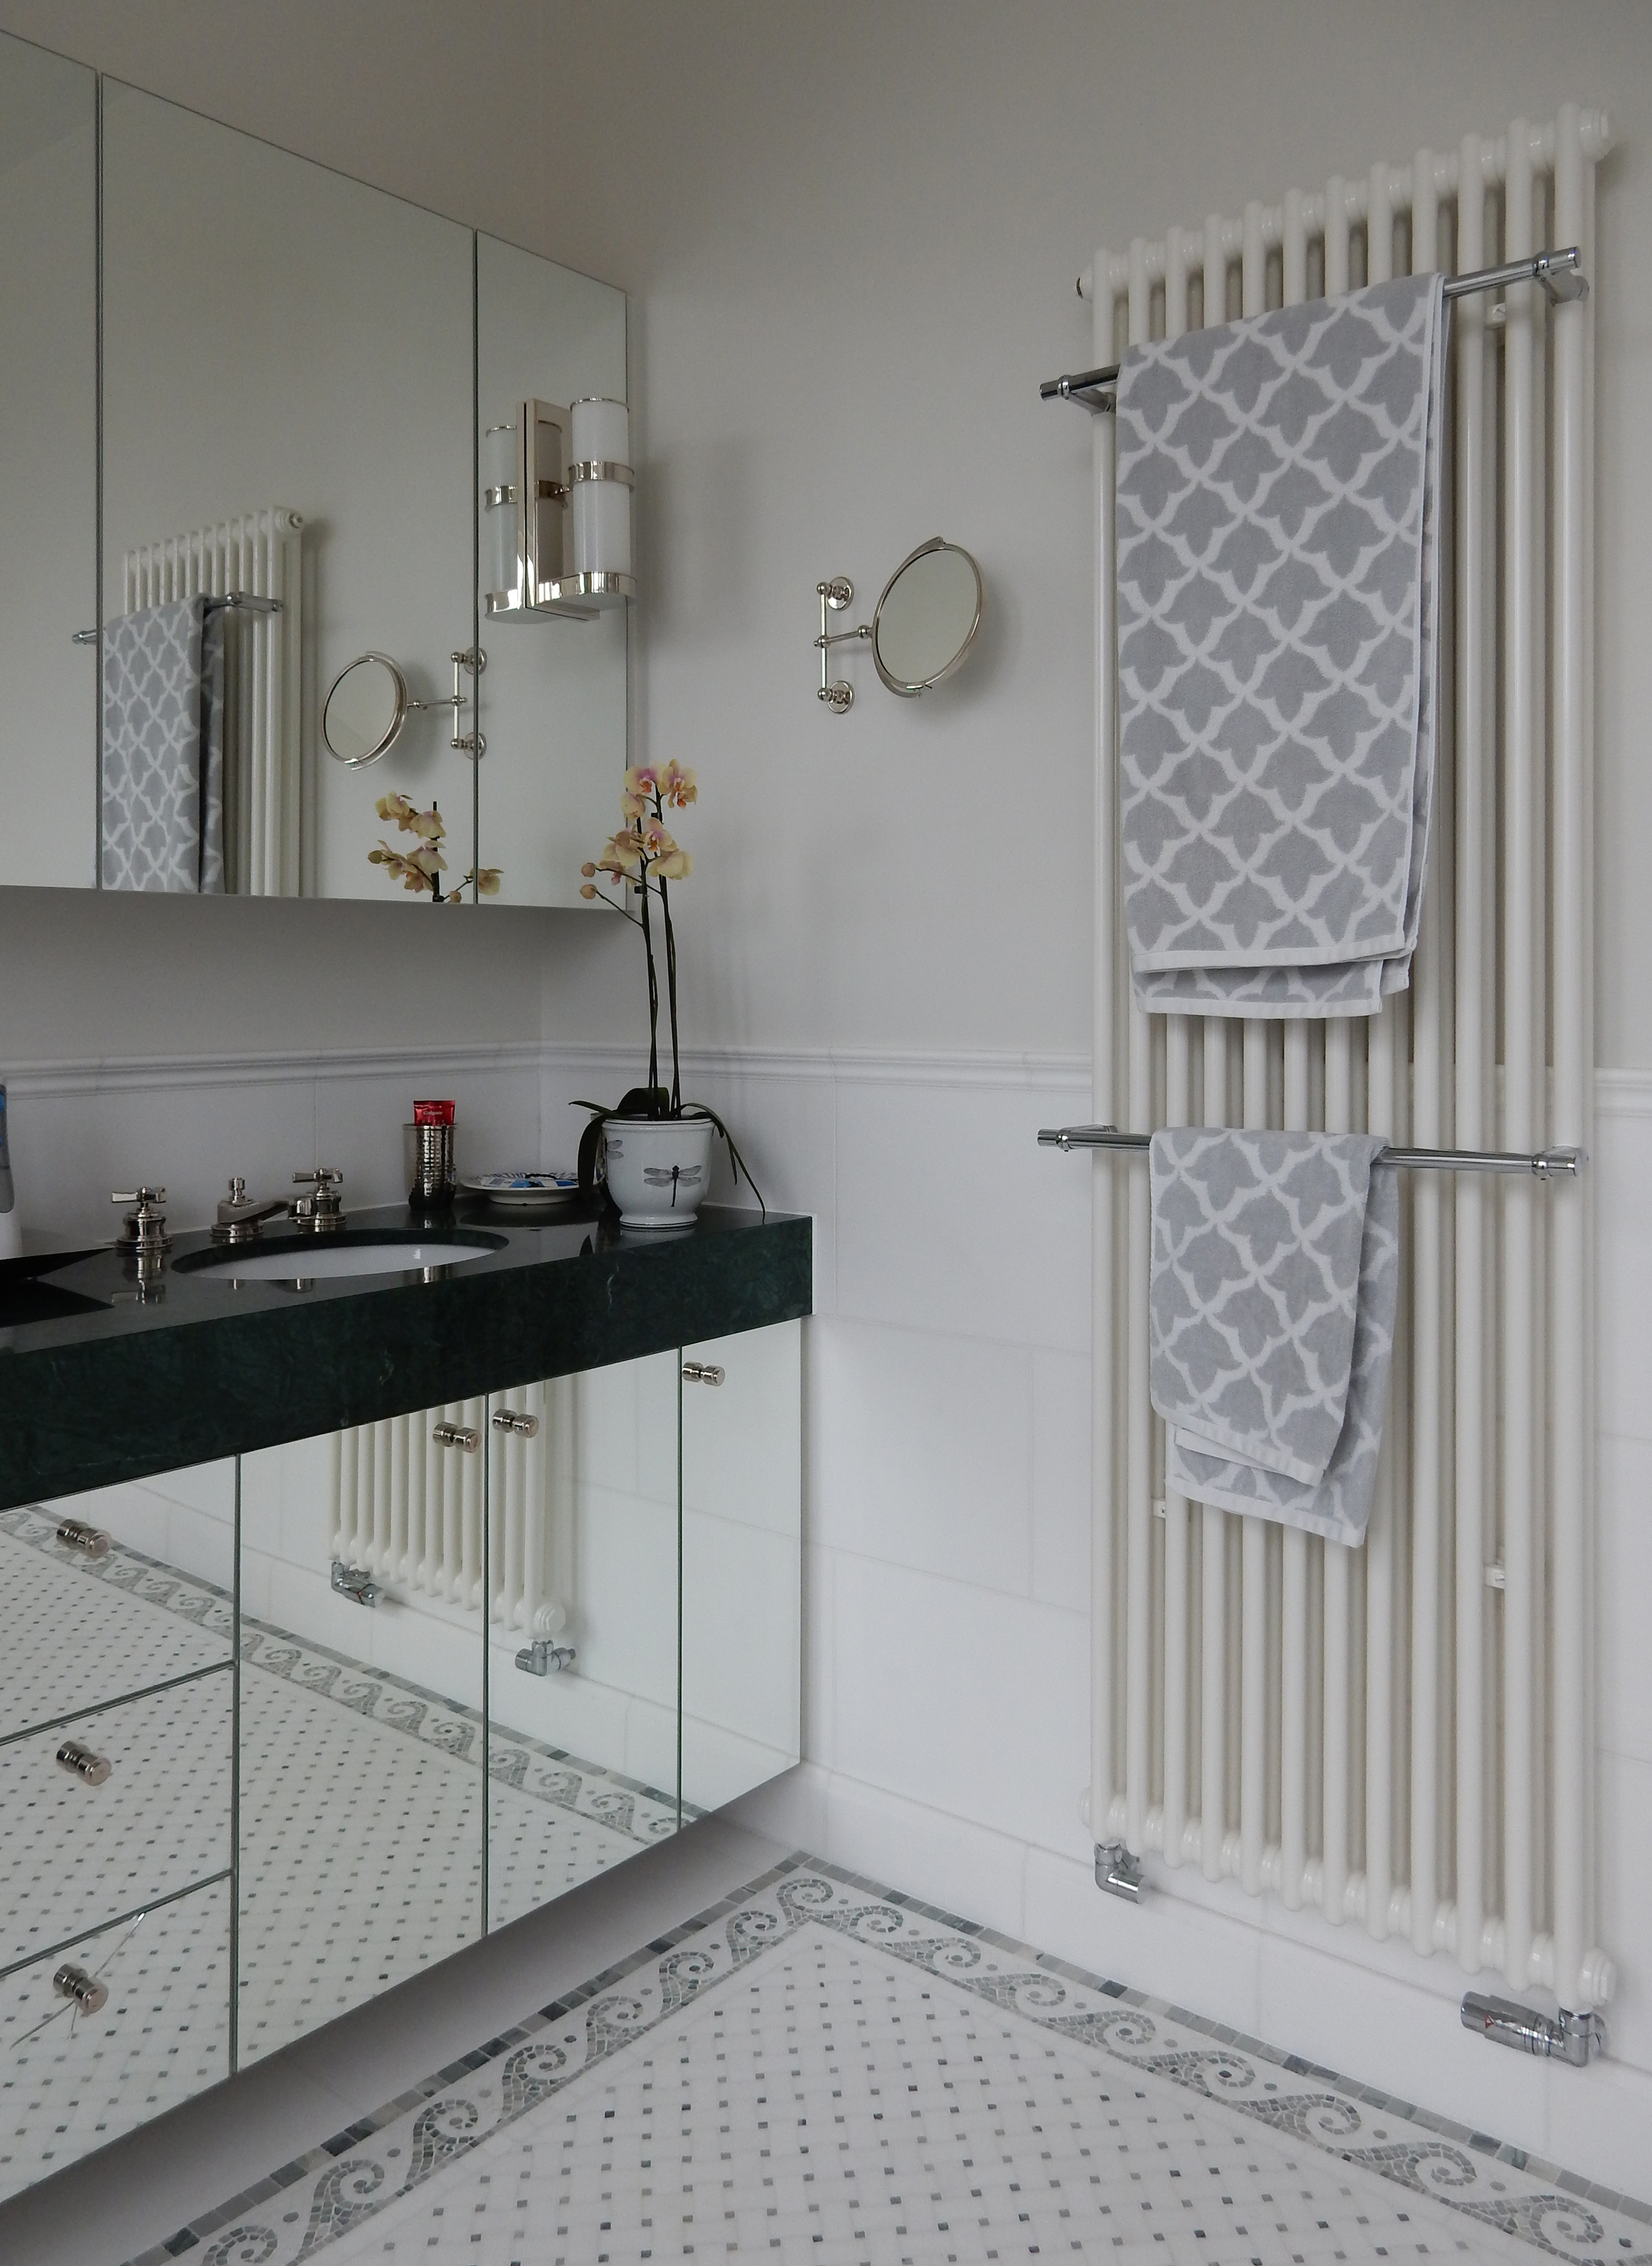 creativemass - basement extension and internal remodelling, light, bathroom, bisque radiator, London